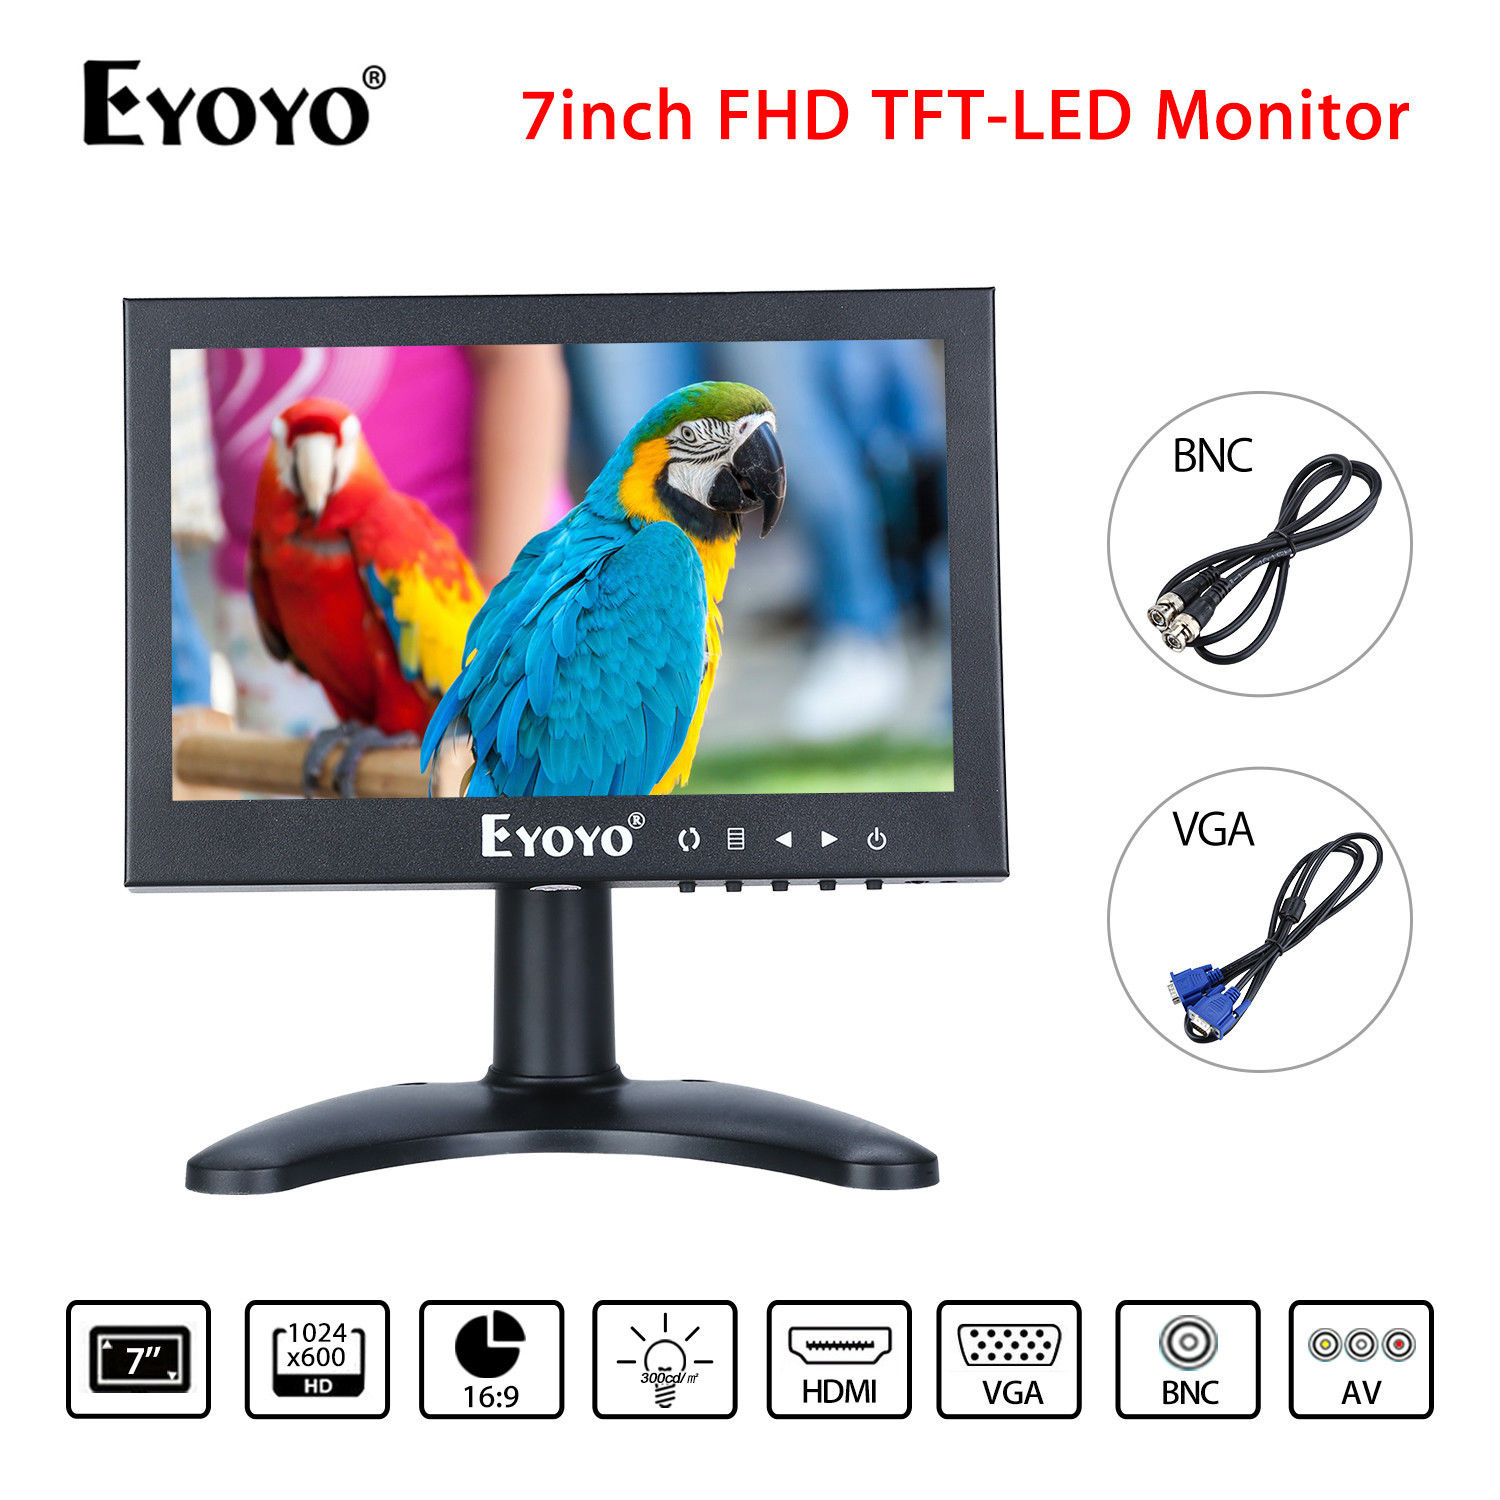 EYOYO 7'' FHD TFT LCD Screen 75degree HDMI BNC VGA AV Video Monitor For CCTV PC DVD DVR Security Camera TV